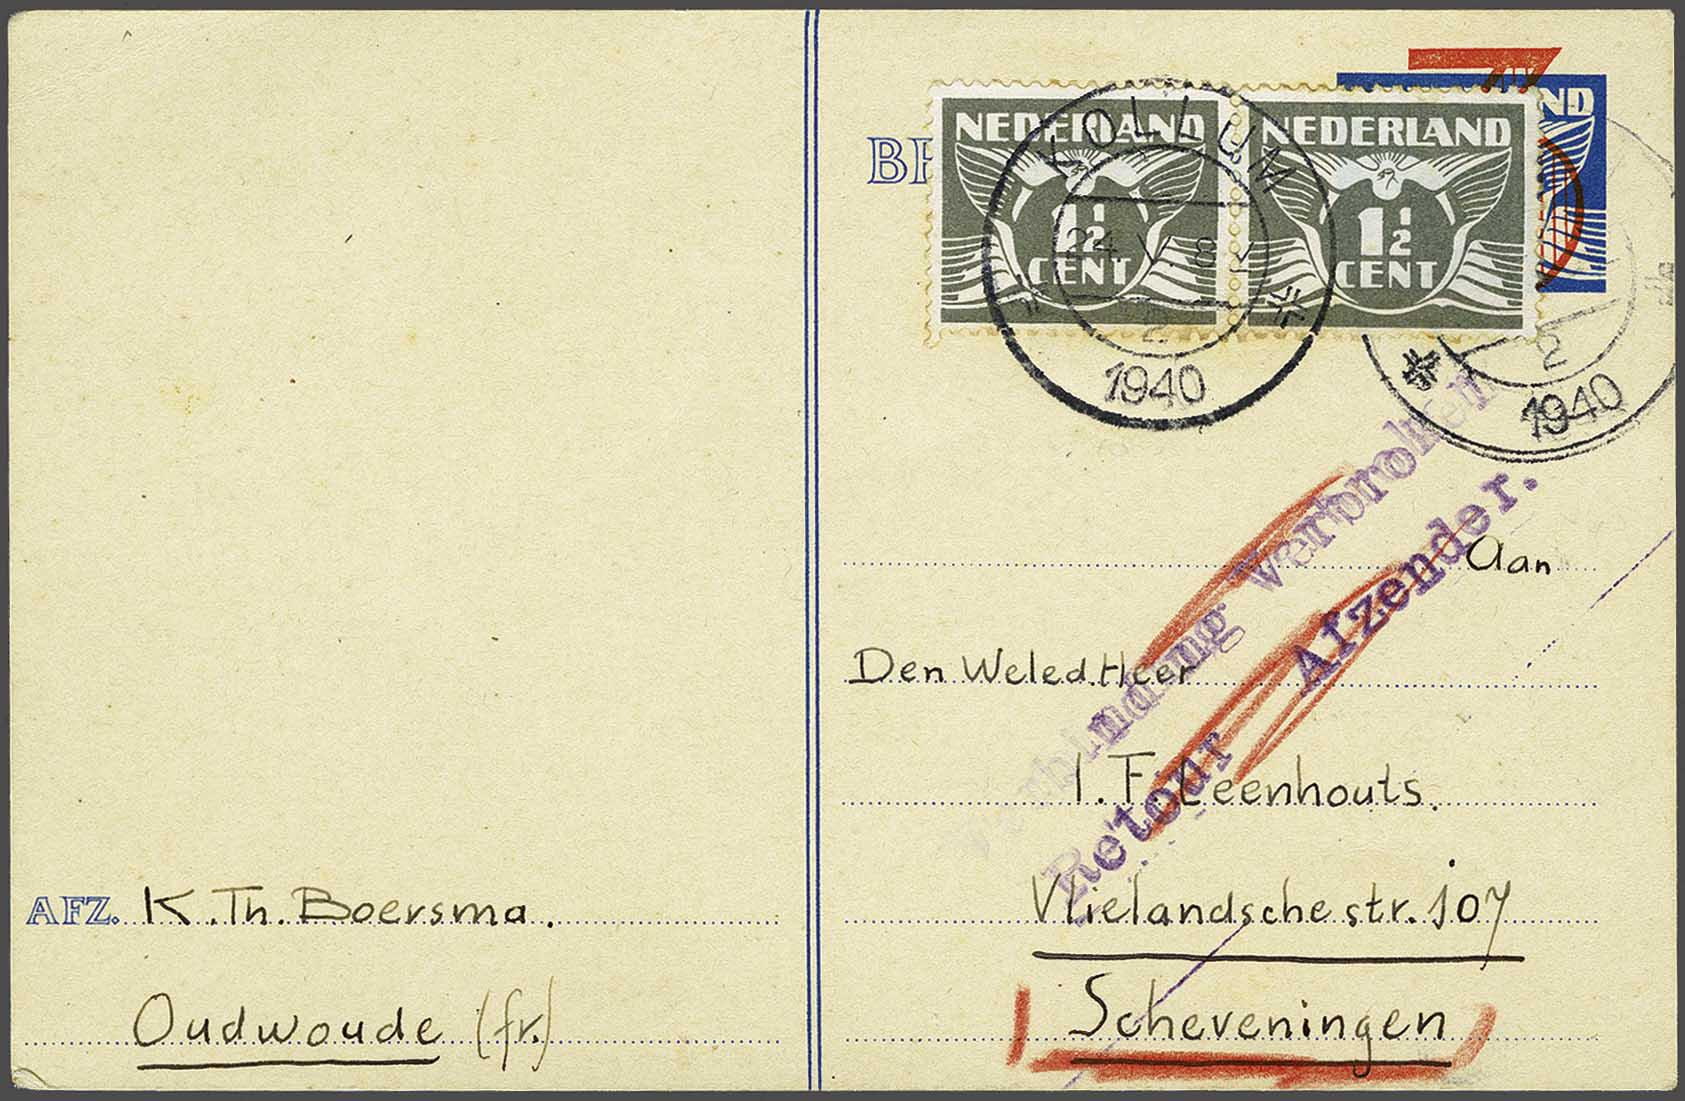 Lot 2810 - Netherlands and former colonies Netherlands -  Corinphila Veilingen Auction 244 -Netherlands and former colonies, WW2 Postal History, Bosnia, German and British colonies, Egypt. - Day 3